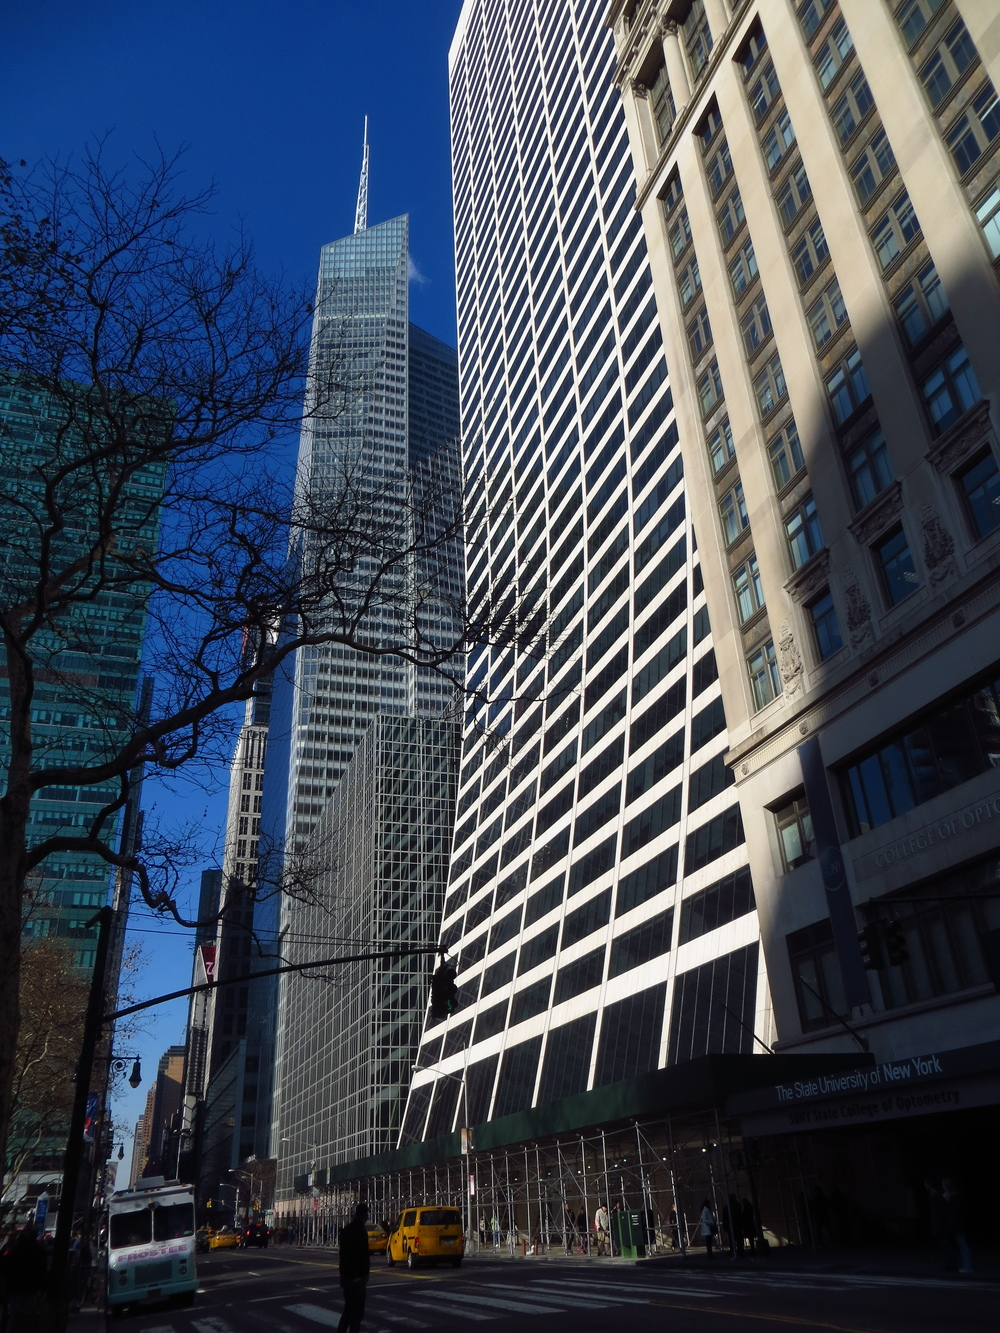 There's a building on 57th St. nearly identical to one with the curved base